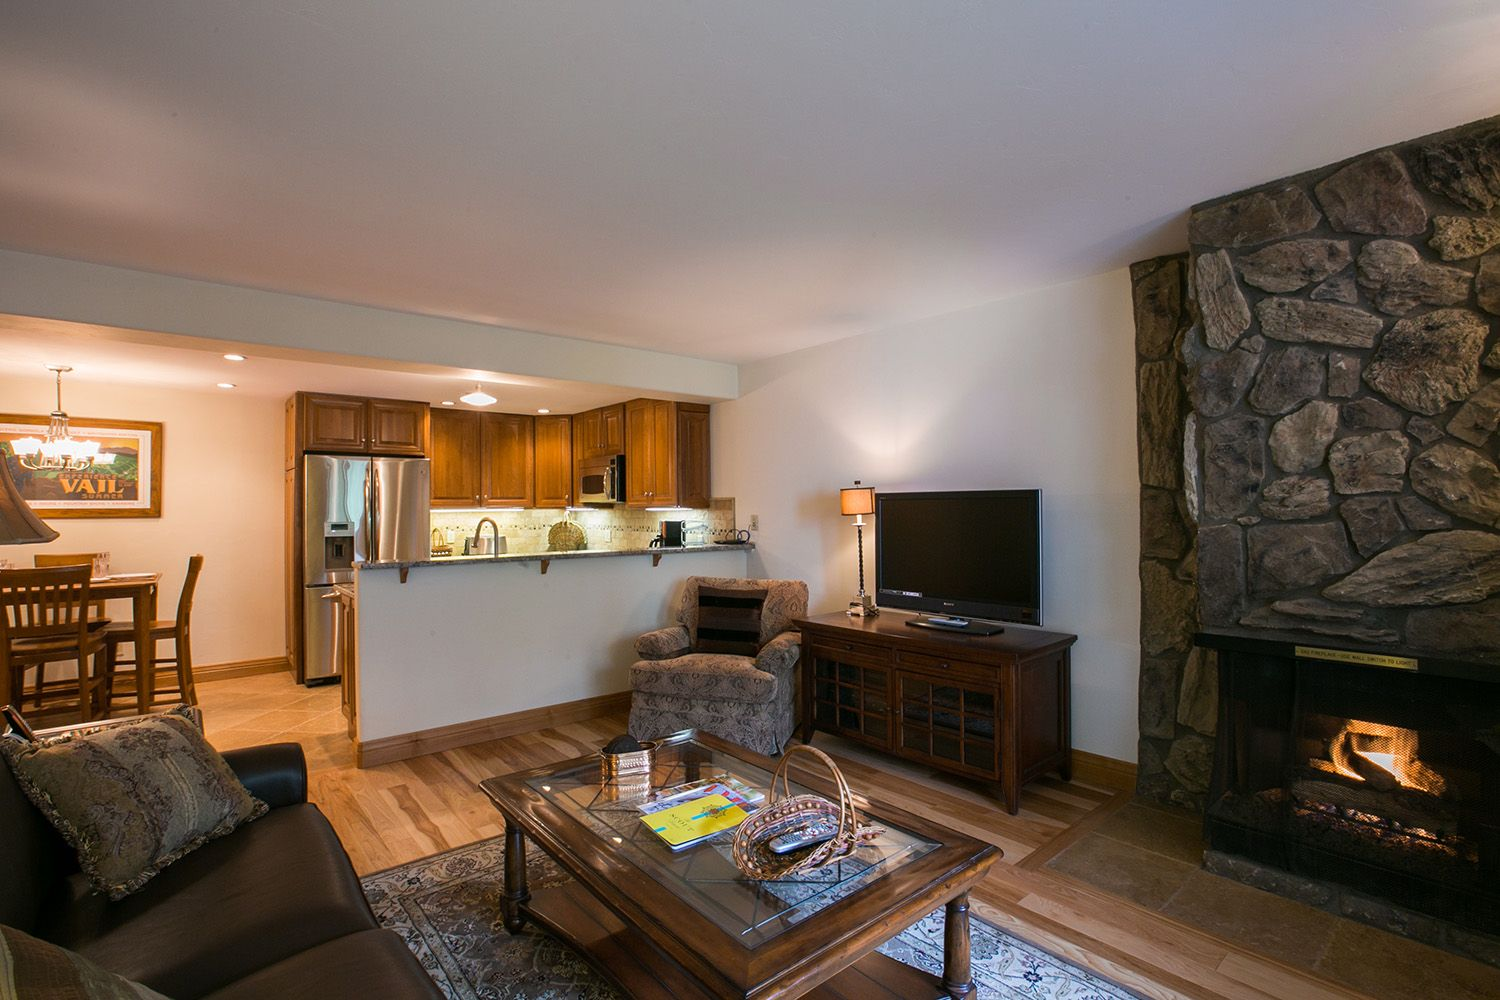 9 Vail Road # 14 Vail, CO 81657